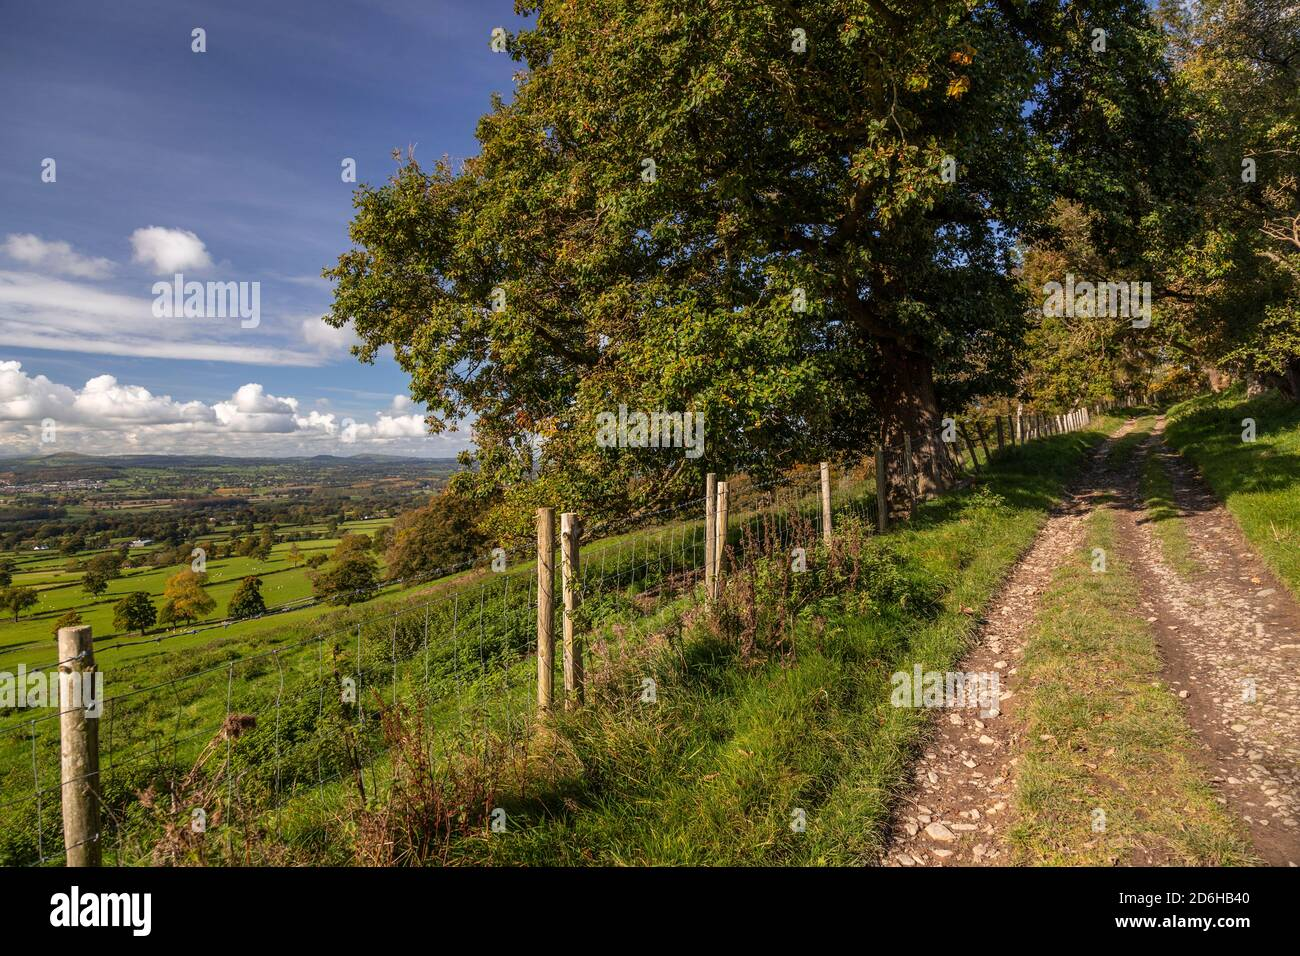 View overlooking the Vale of Clwyd from the Clwydian Range, North Wales Stock Photo